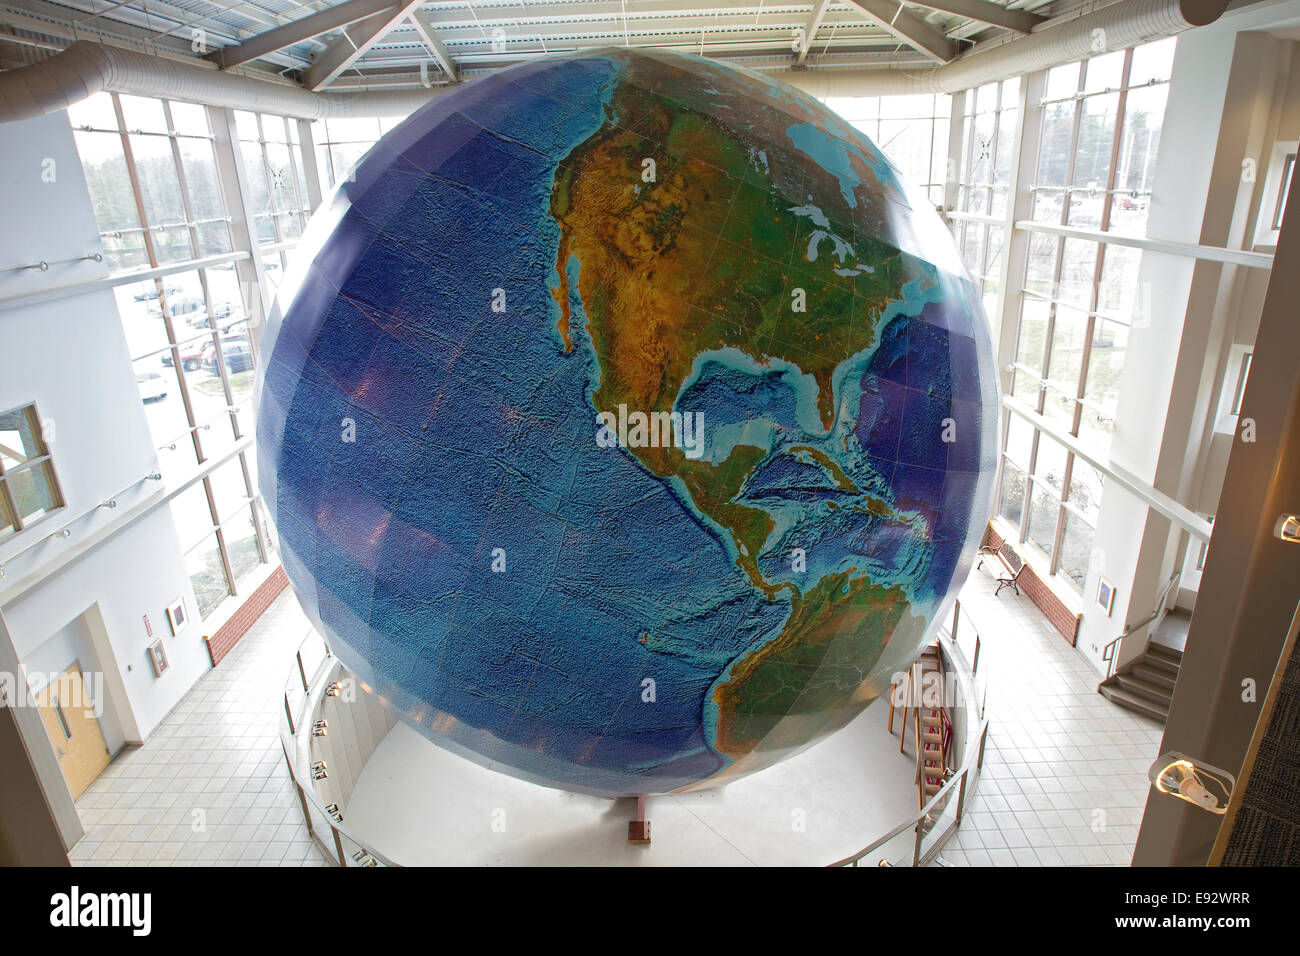 Globe eartha worlds largest revolving and rotating globe delorme globe eartha worlds largest revolving and rotating globe delorme map store yarmouth maine gumiabroncs Images